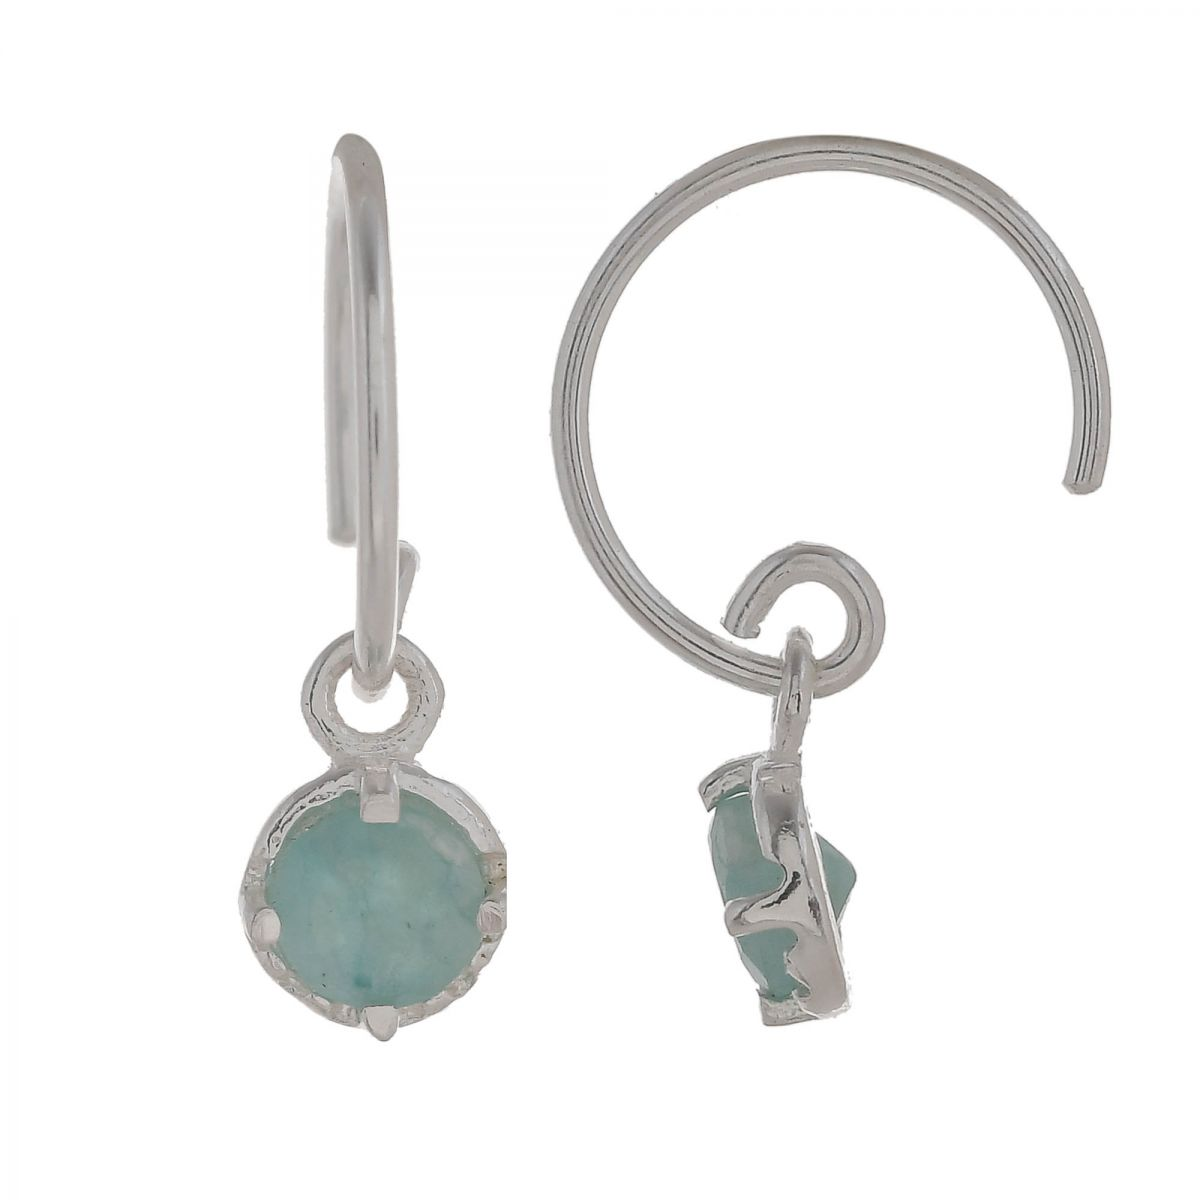 c earring 4mm hanging round amazonite